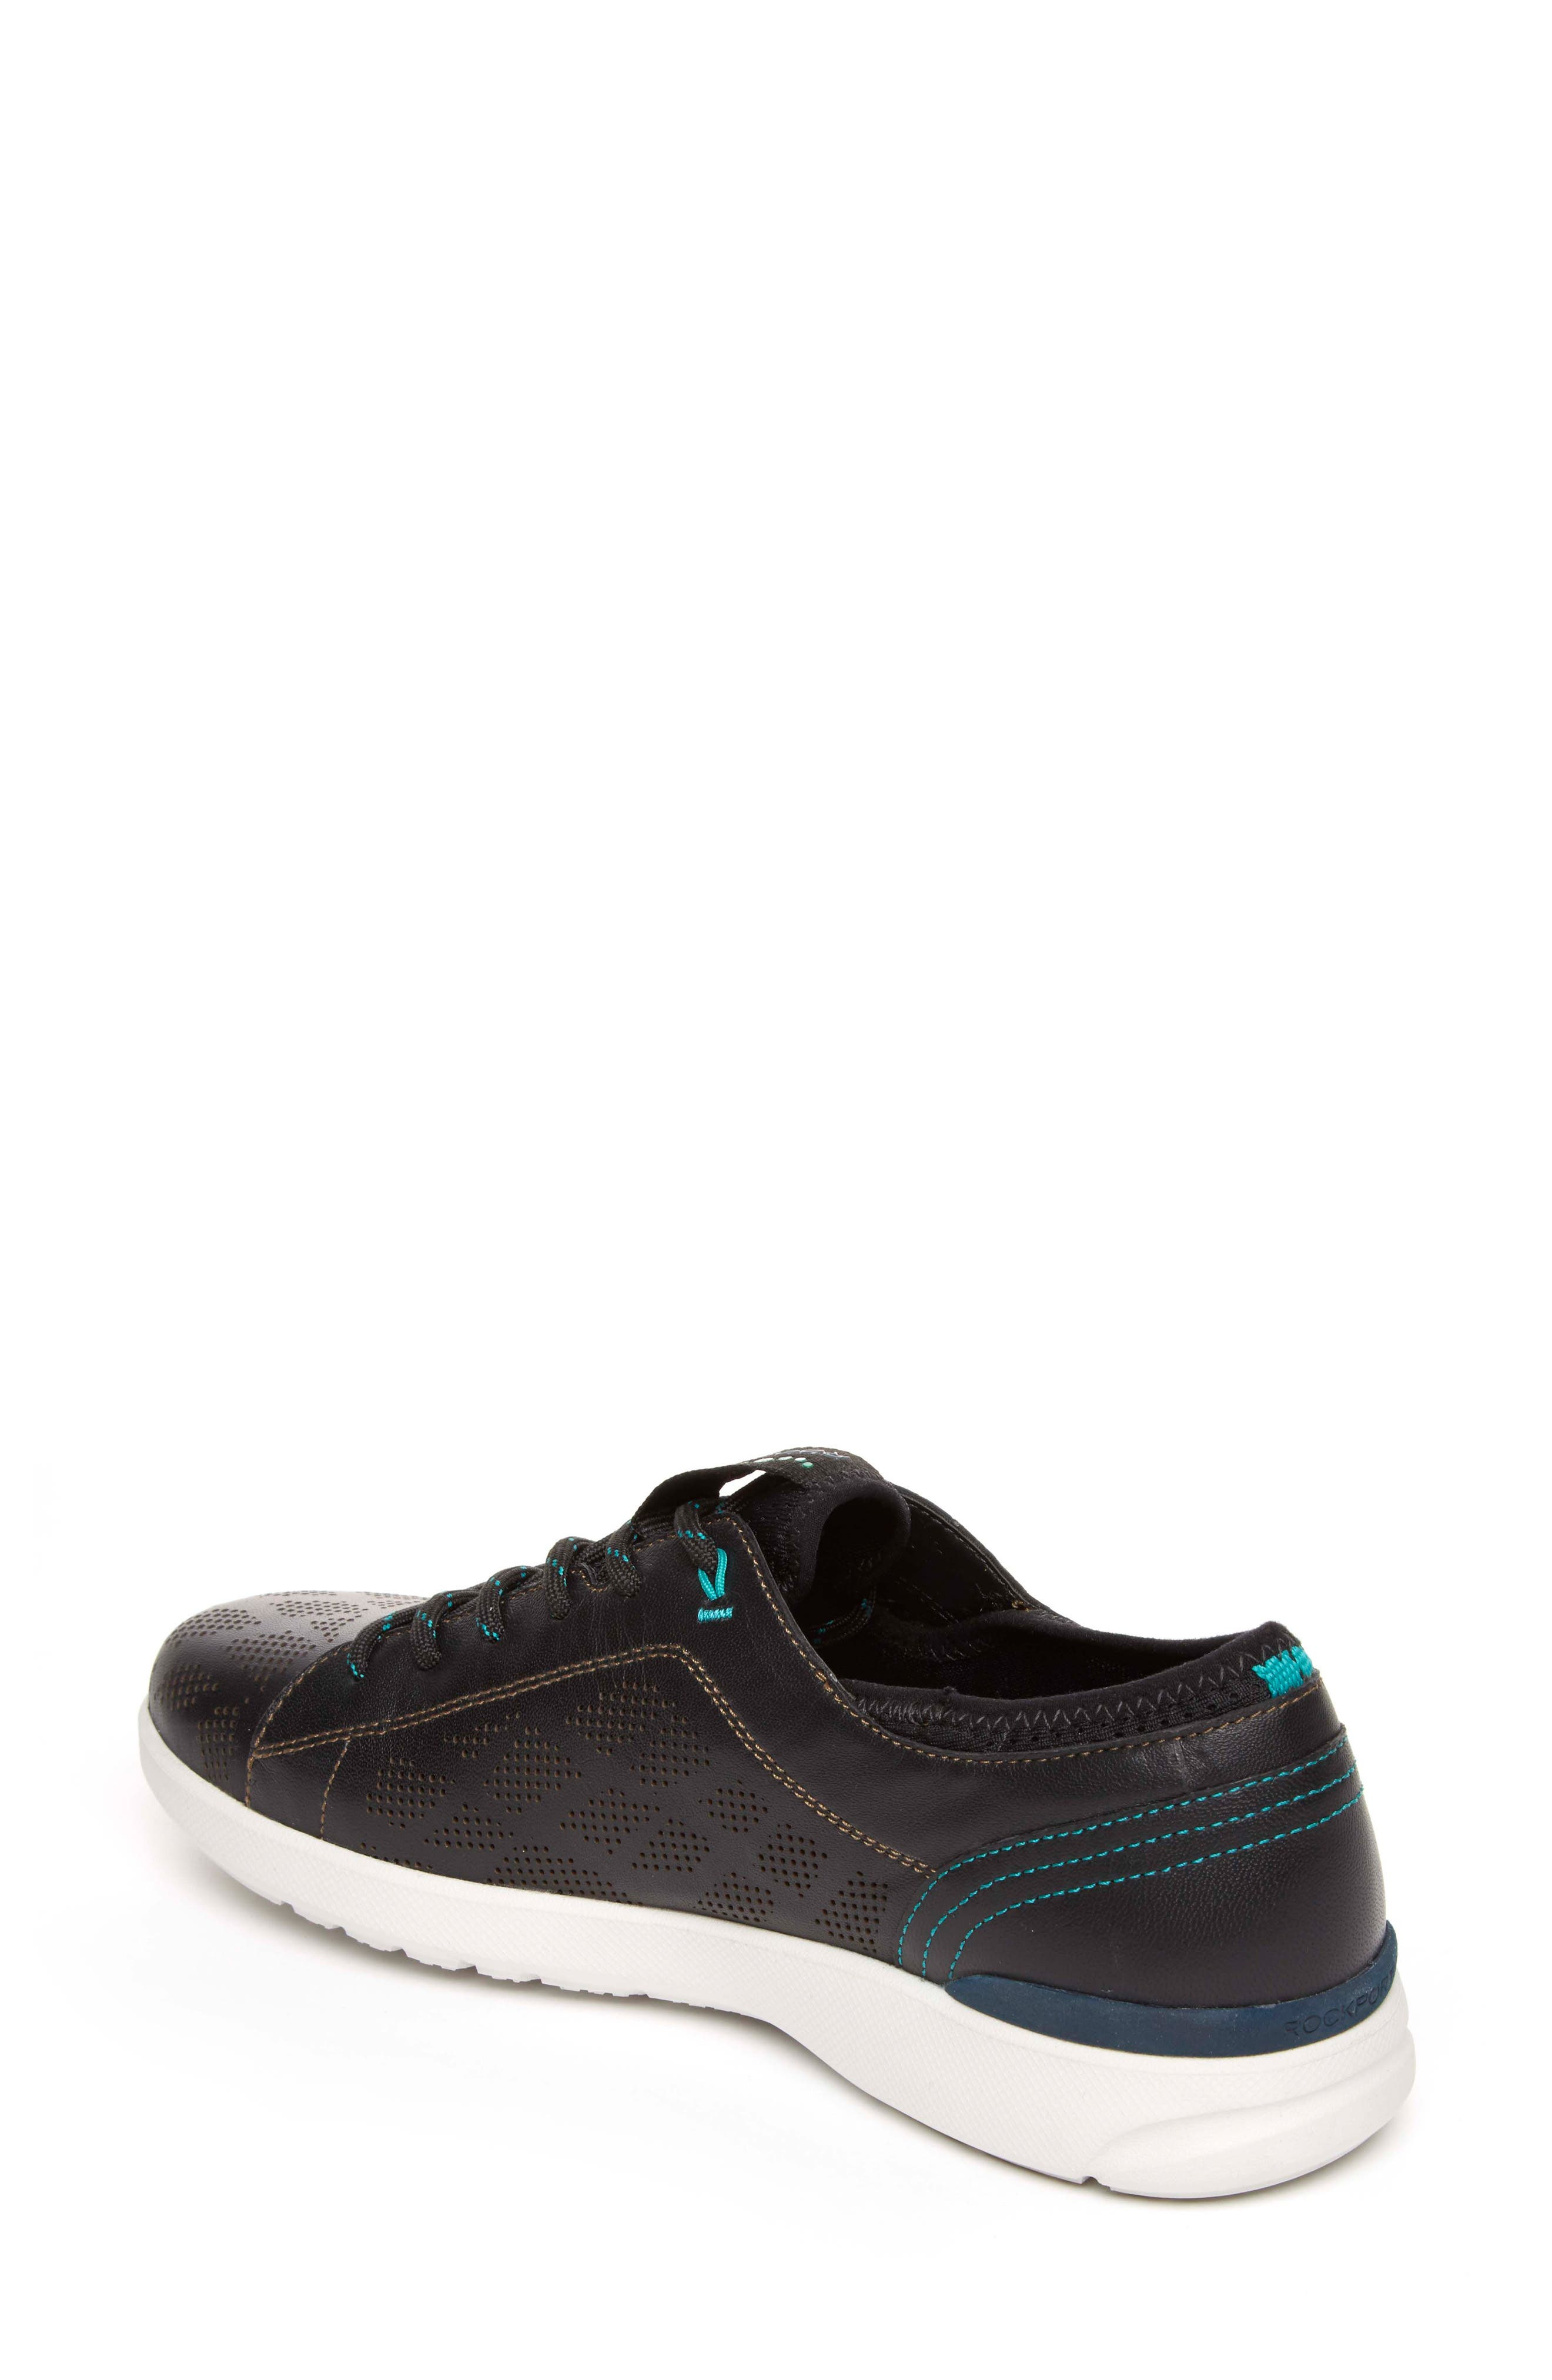 truFLEX Perforated Sneaker,                             Alternate thumbnail 2, color,                             BLACK LEATHER